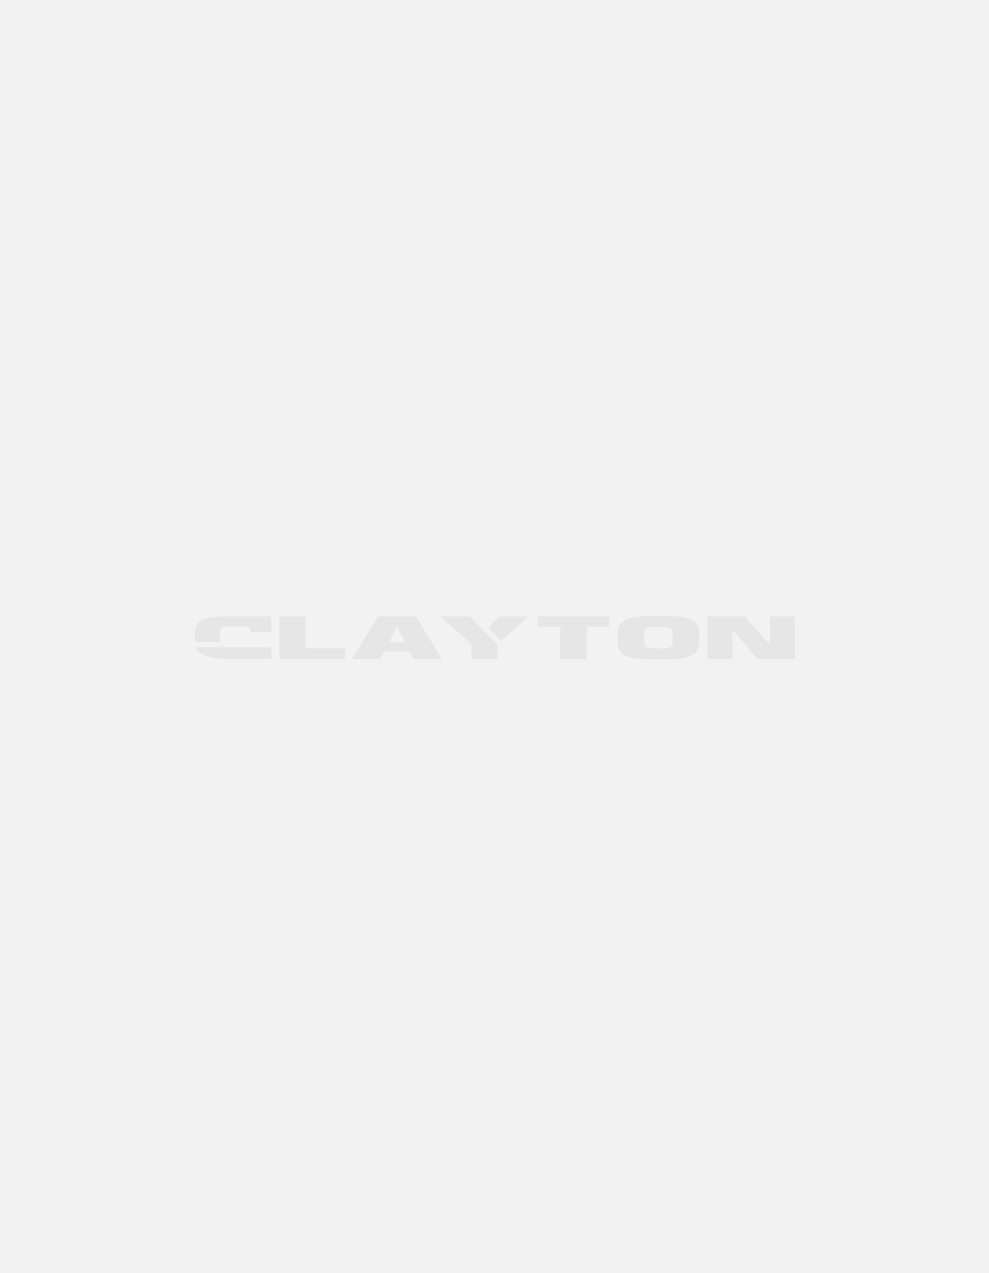 Men's shirt with stand up collar and white and blue print